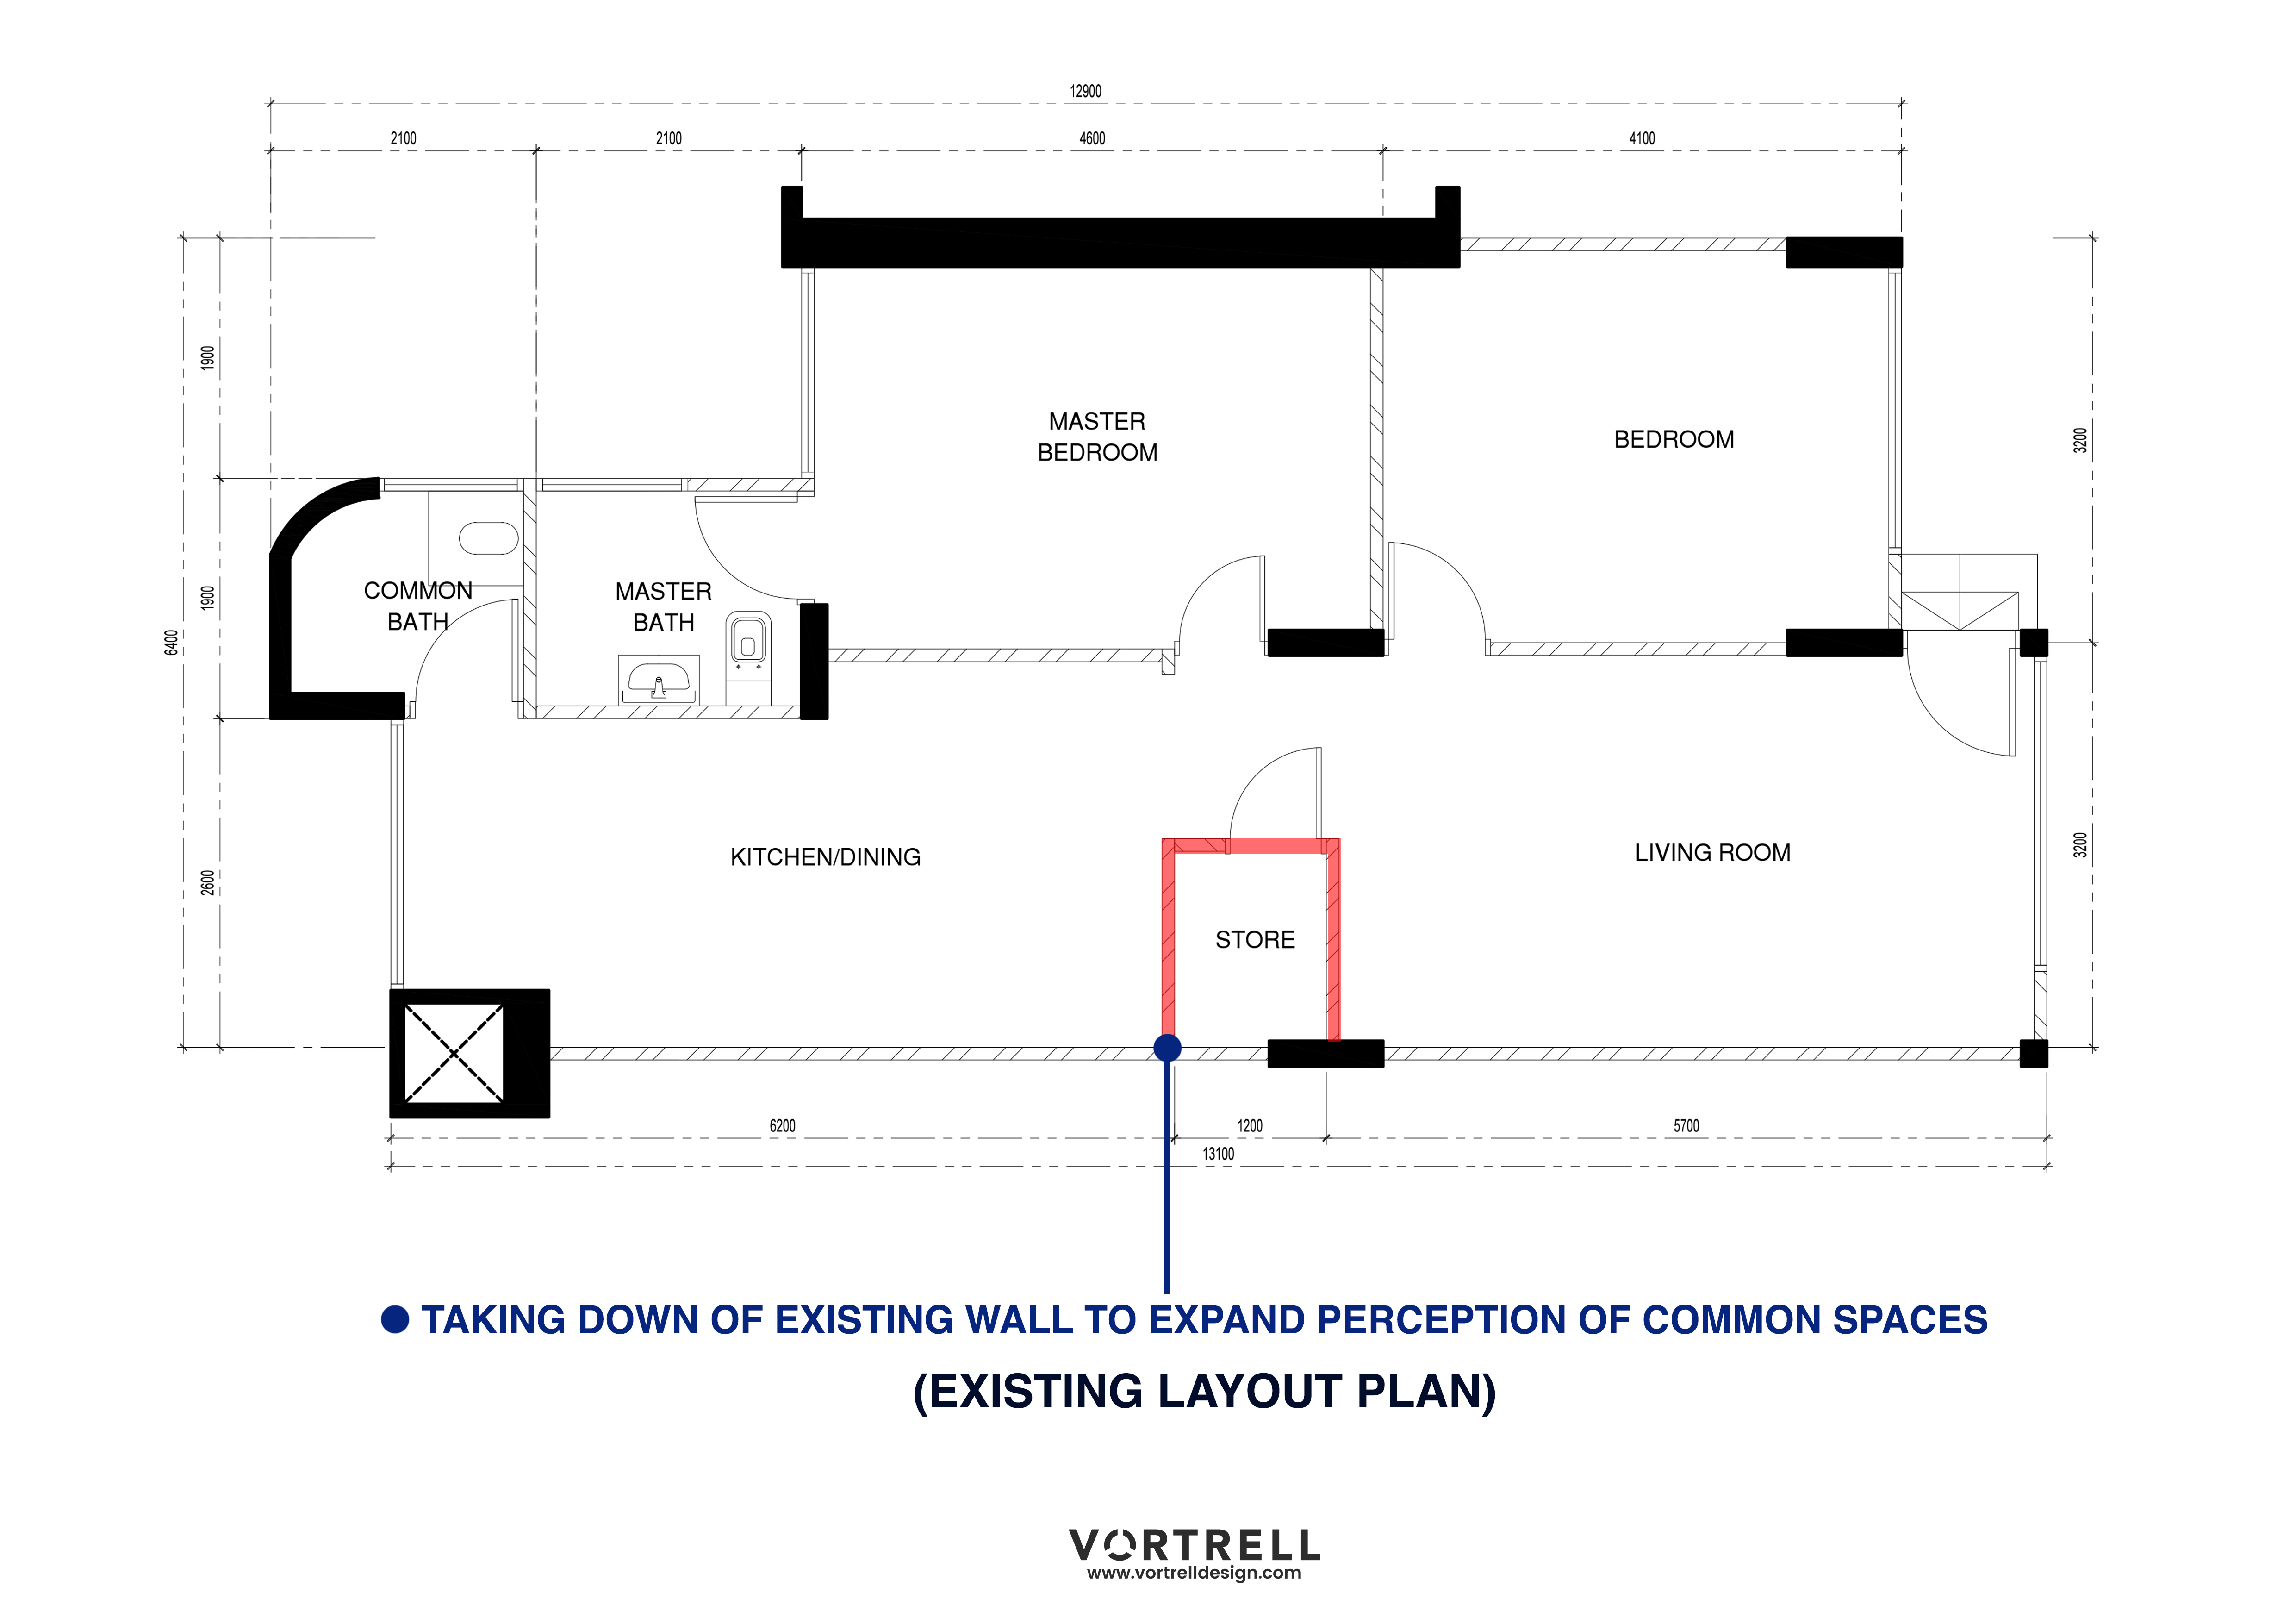 Existing Layout Plan